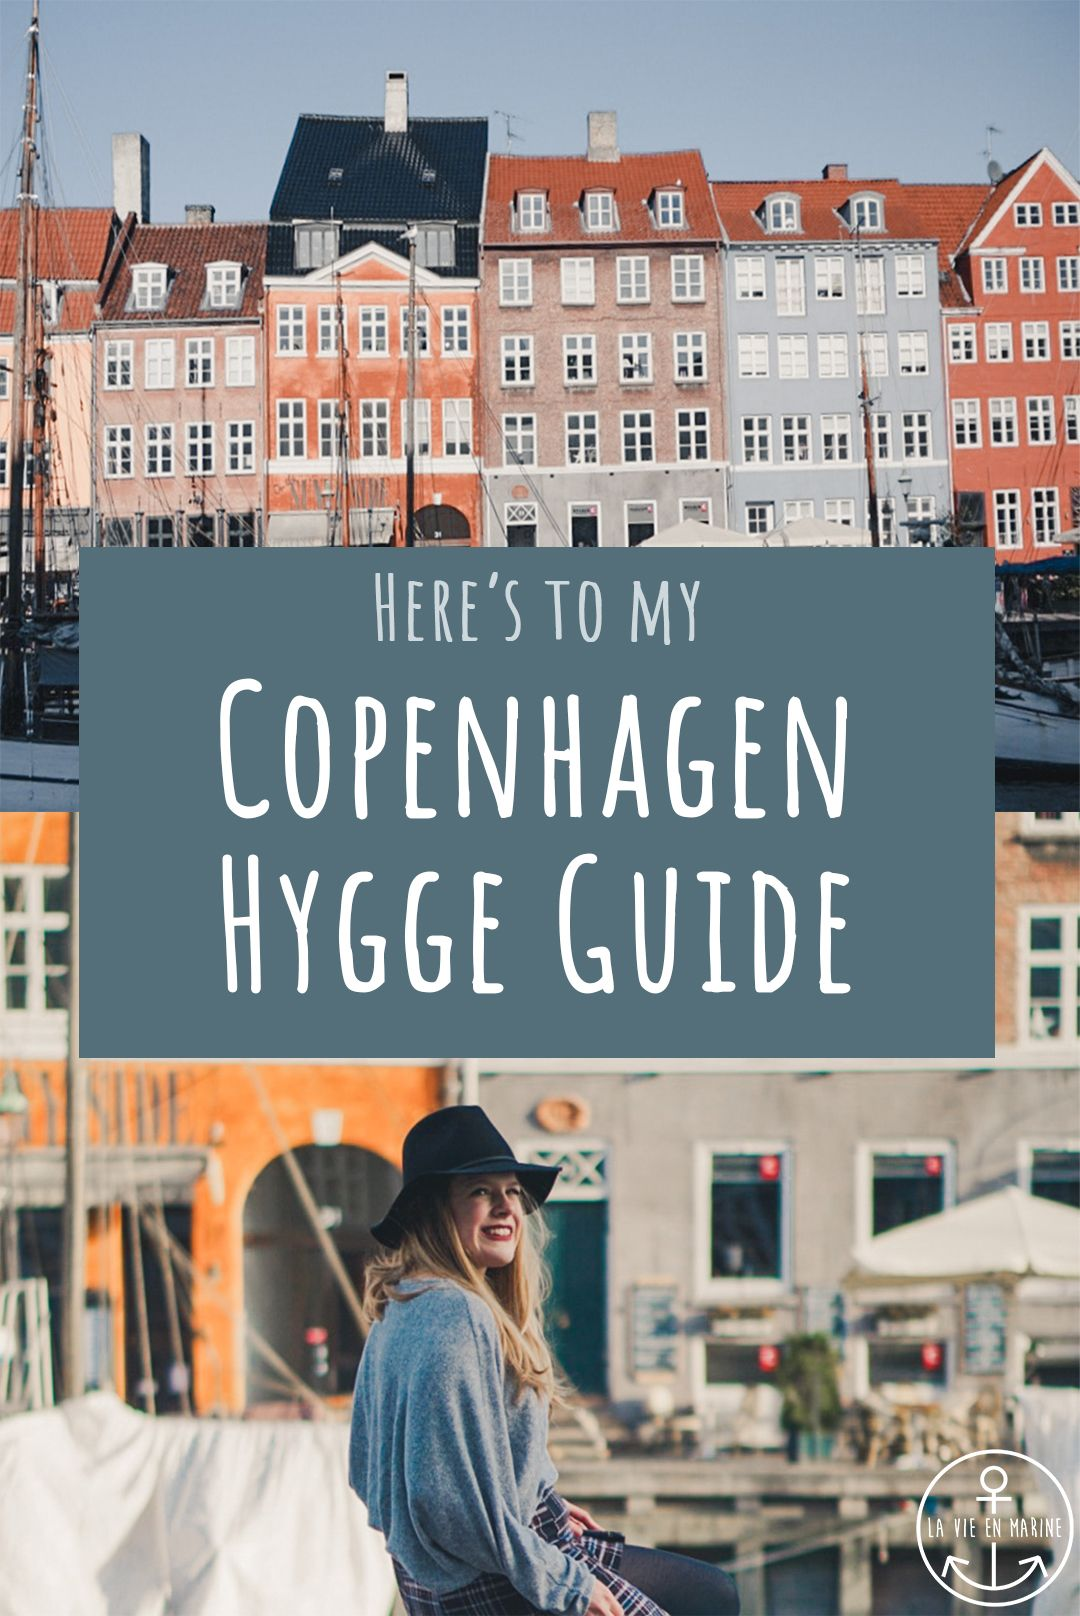 #hygge and #copenhagen simply belong together. You can't visit Copenhagen without thinking about how to embrace some of the #danish way of life! #copenhagendenmark #hyggelife #hyggelifestyle #denmark denmark, denmark kopenhagen, denmark copenhagen, denmark culture, denmark photography, denmark living, denmark hygge, things to do in copenhagen, copenhagen denmark, copenhagen bucket list, copenhagen travel, copenhagen food,